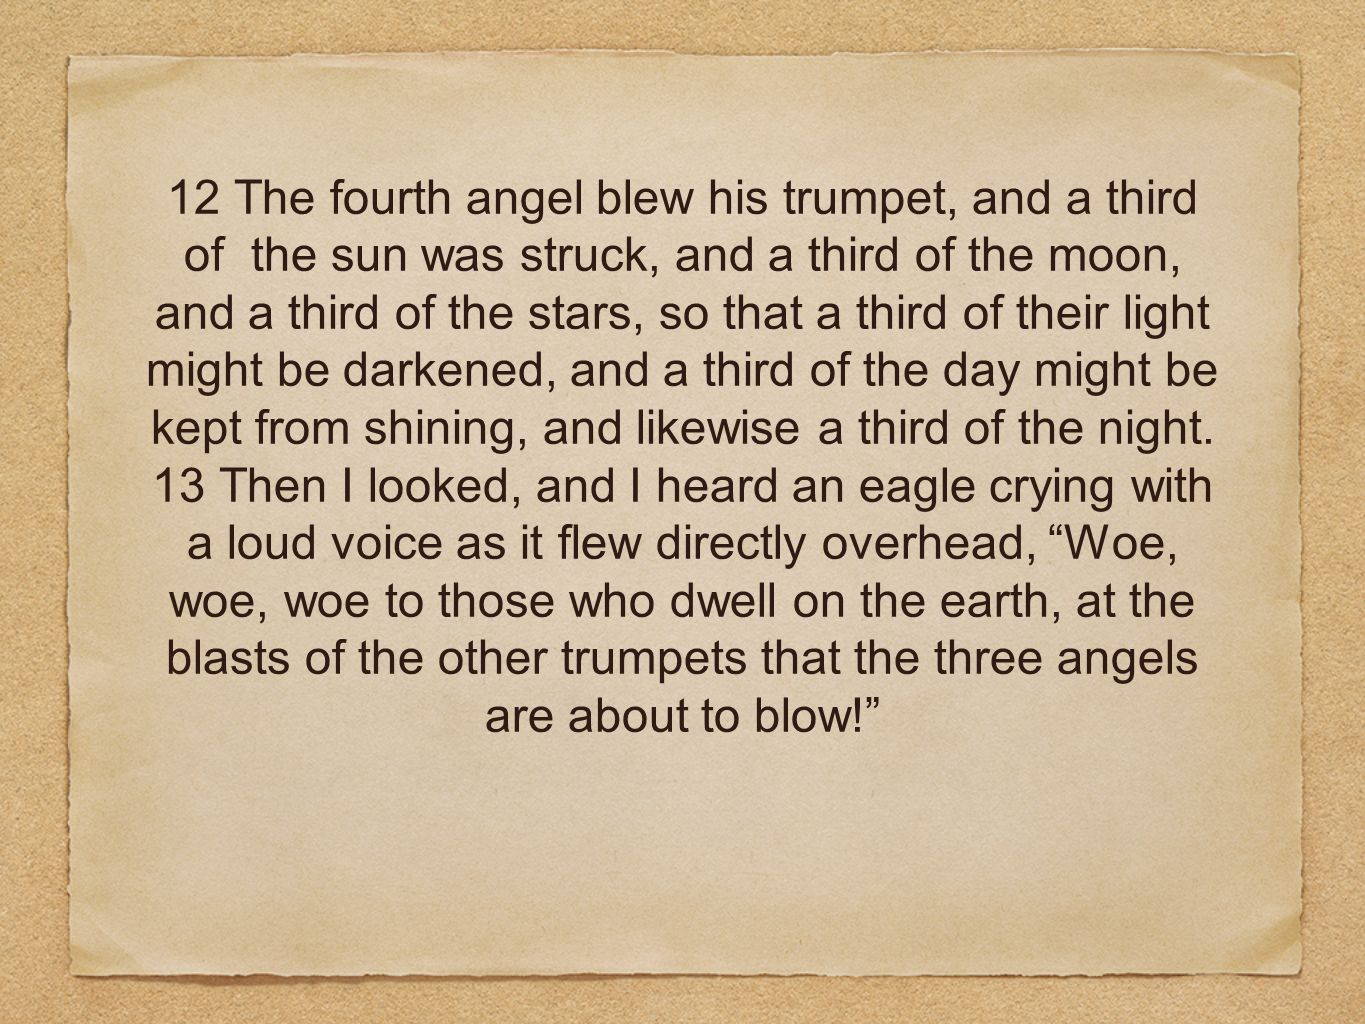 12 The fourth angel blew his trumpet, and a third of the sun was struck, and a third of the moon, and a third of the stars, so that a third of their light might be darkened, and a third of the day might be kept from shining, and likewise a third of the night.